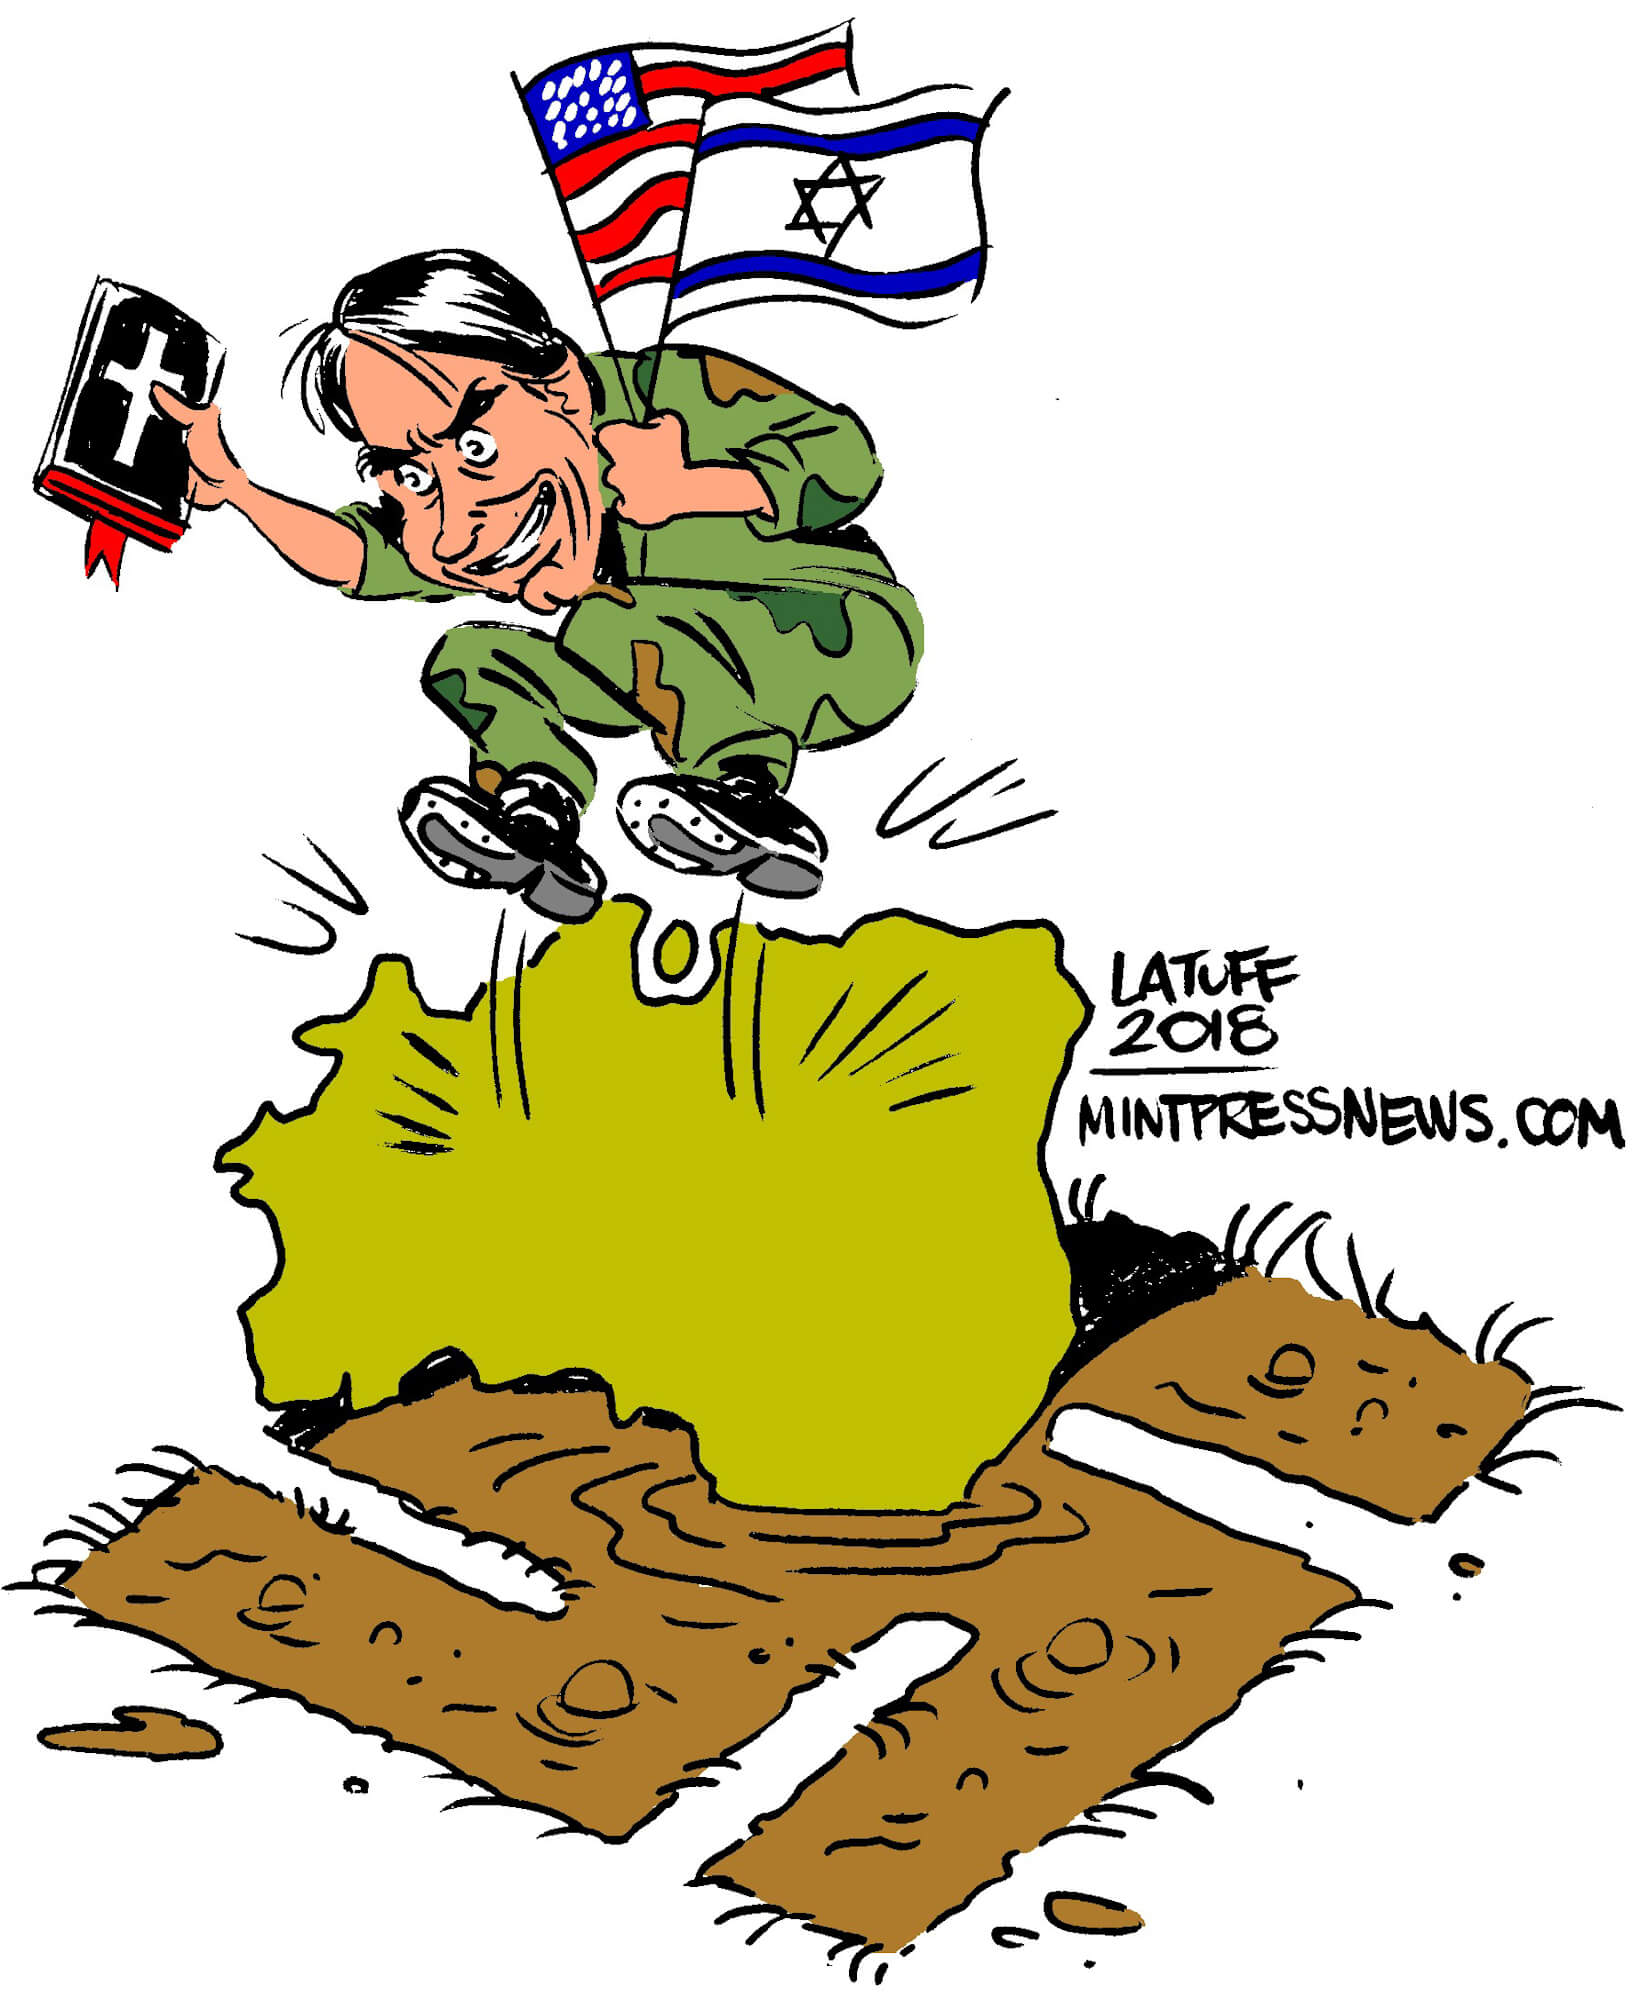 Brazil, backed by the United States and Israel, elects far-right president Bolsonaro. An Editorial Cartoon by Carlos Latuff for MintPress News.